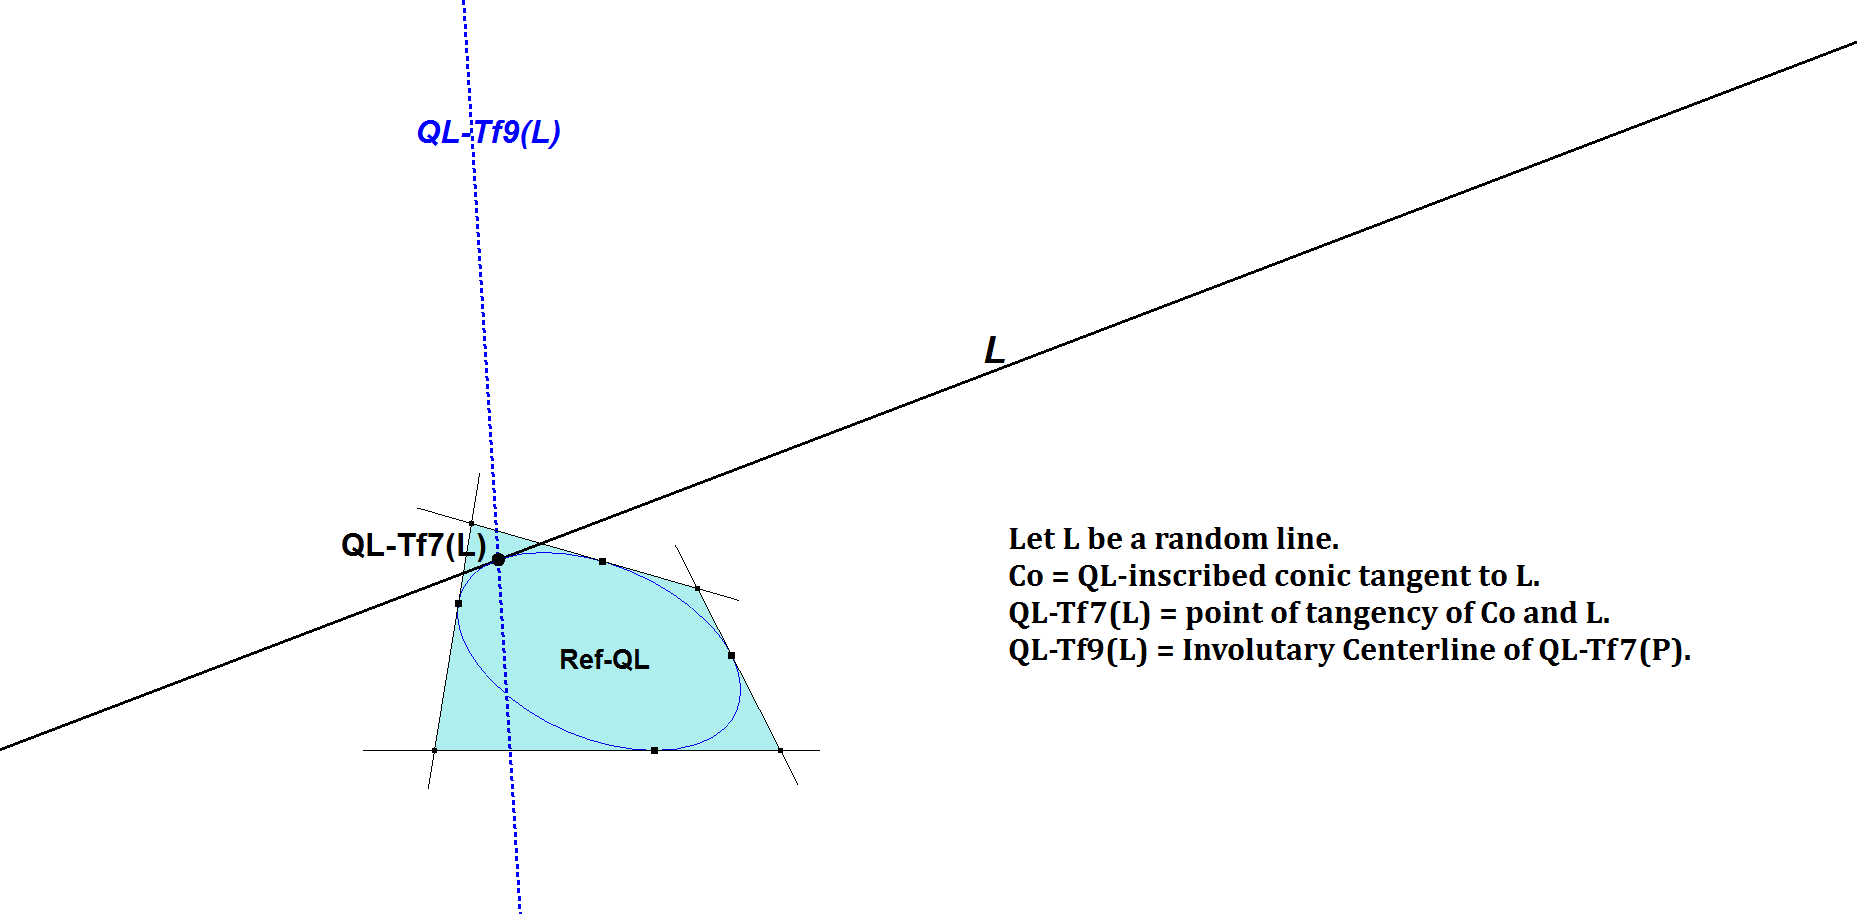 QL Tf9 Involutary Centerline of the 5th Line point of tangency